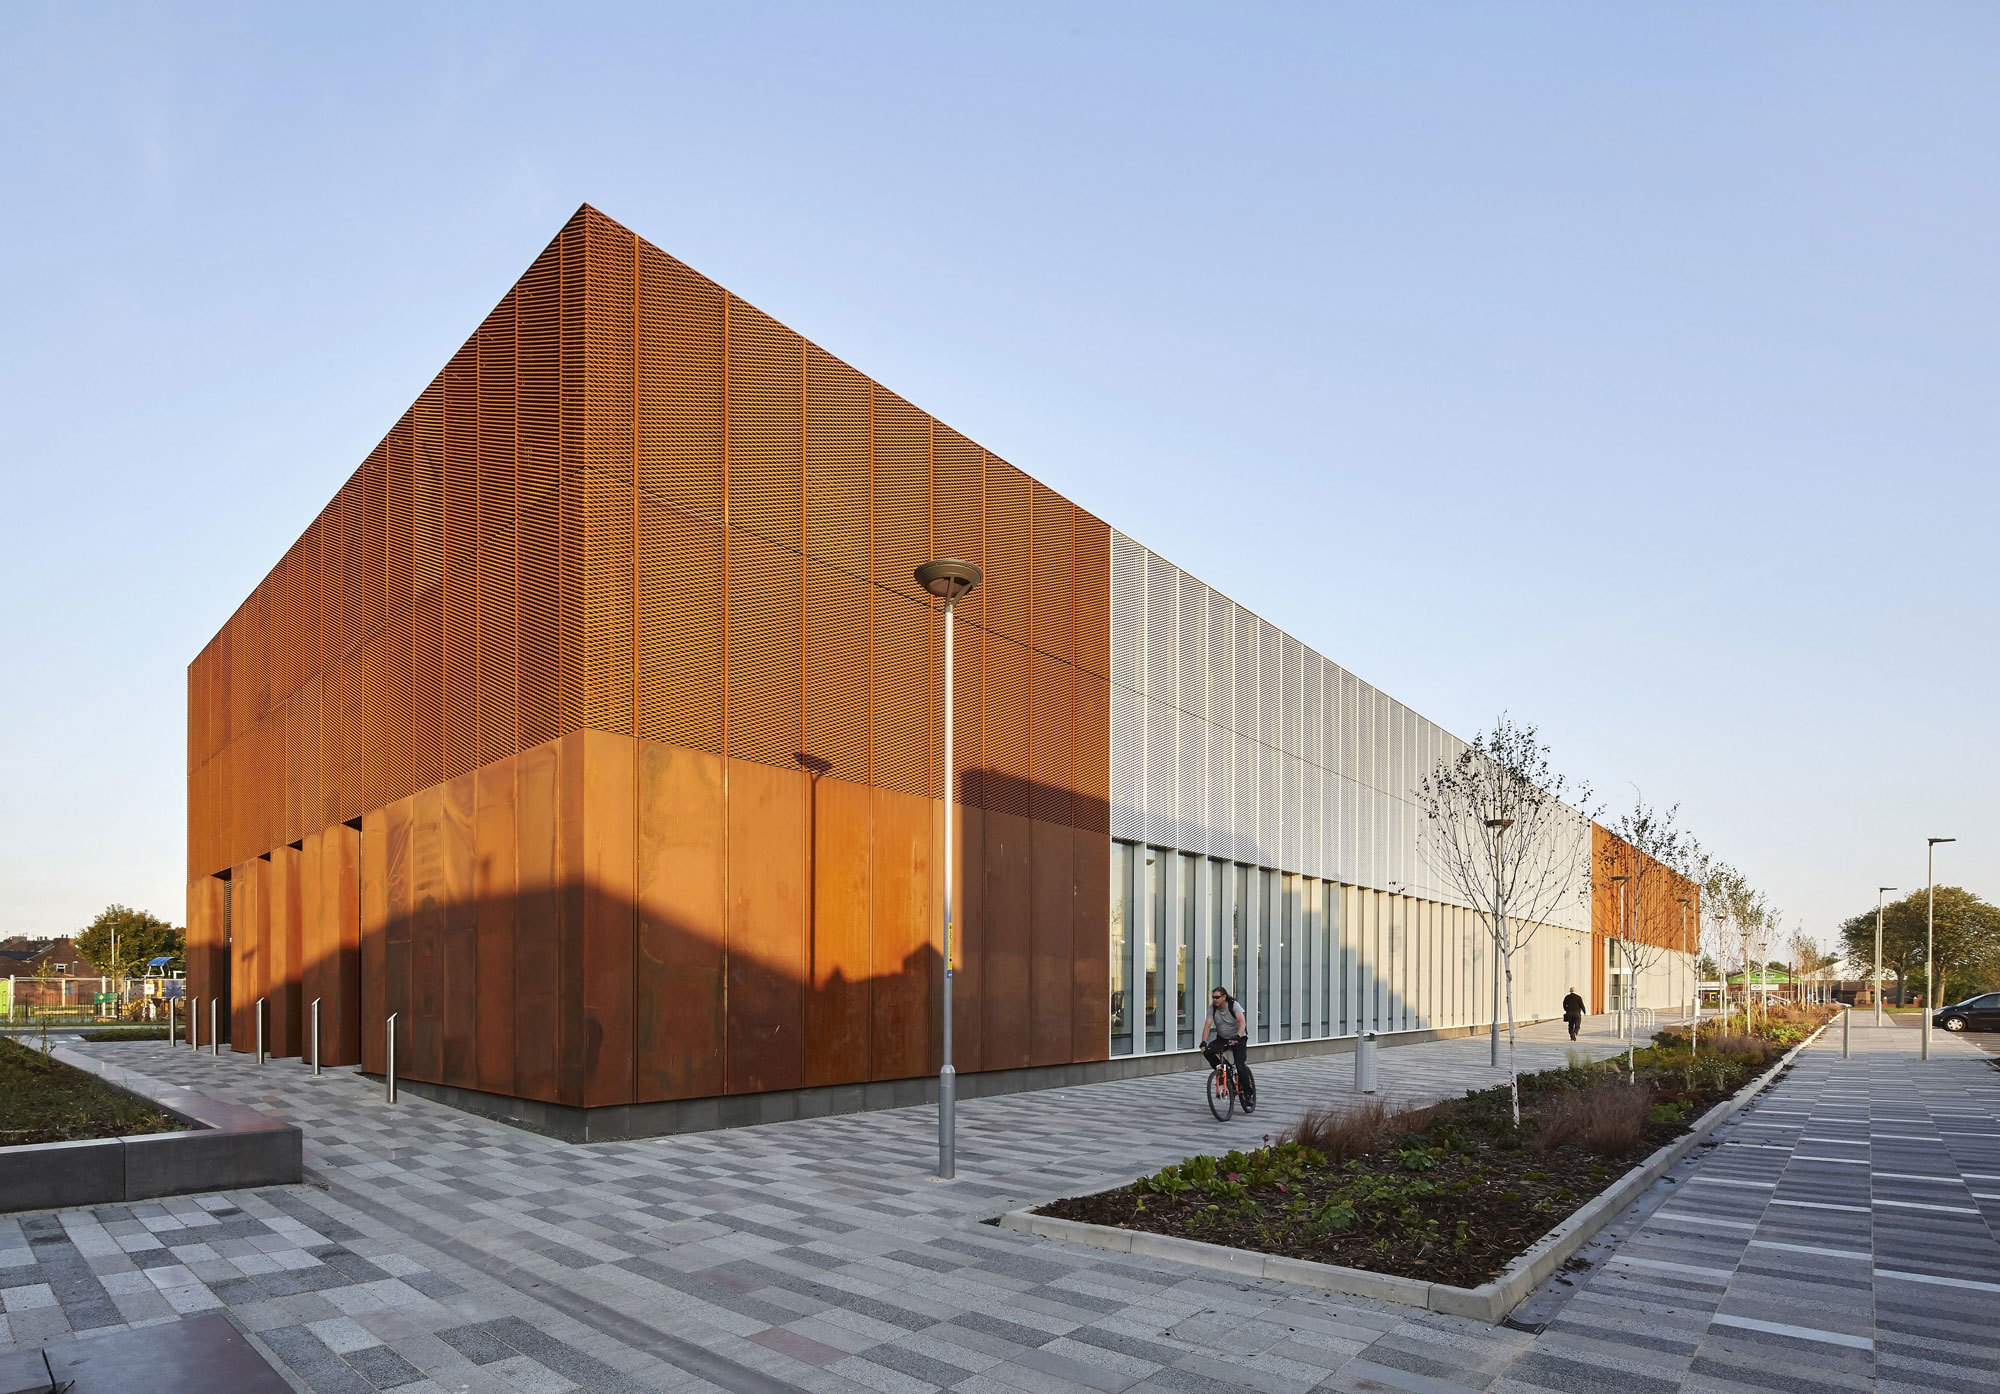 Hebburn Central: part library, part sports centre, part workplace